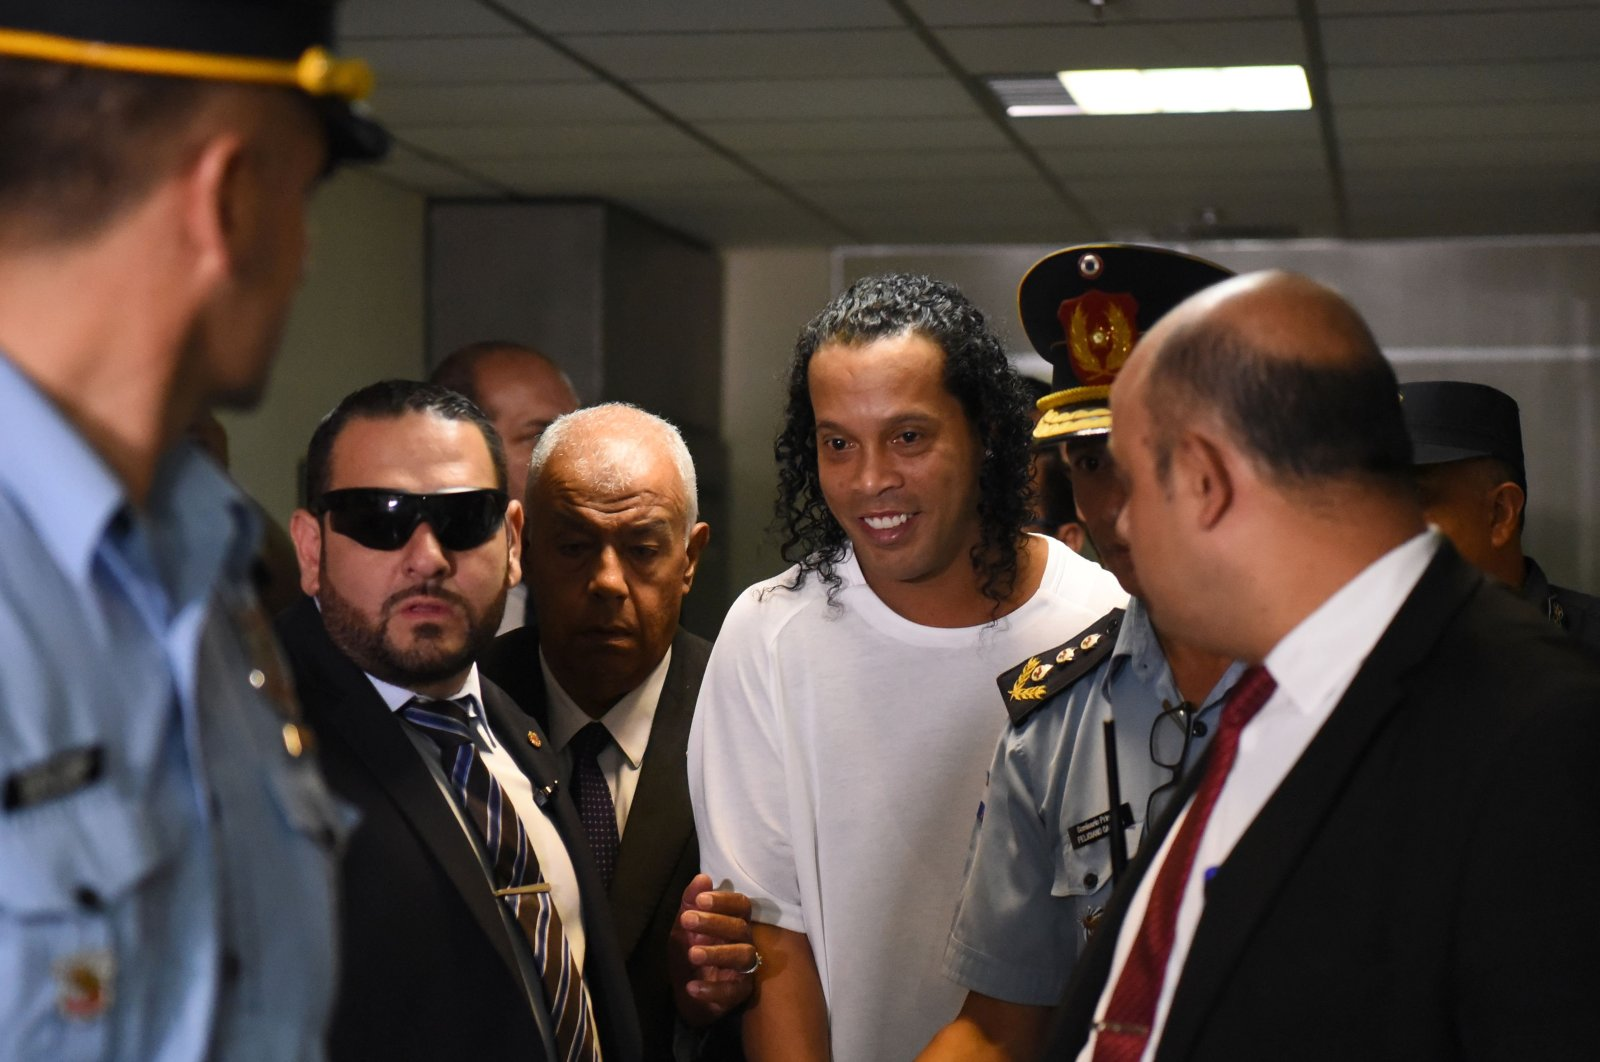 Retired Brazilian football player Ronaldinho (C) arrives at Asuncion's Justice Palace to testify about his irregular entry into the country, in Asuncion, Paraguay, March 6, 2020. (AFP Photo)